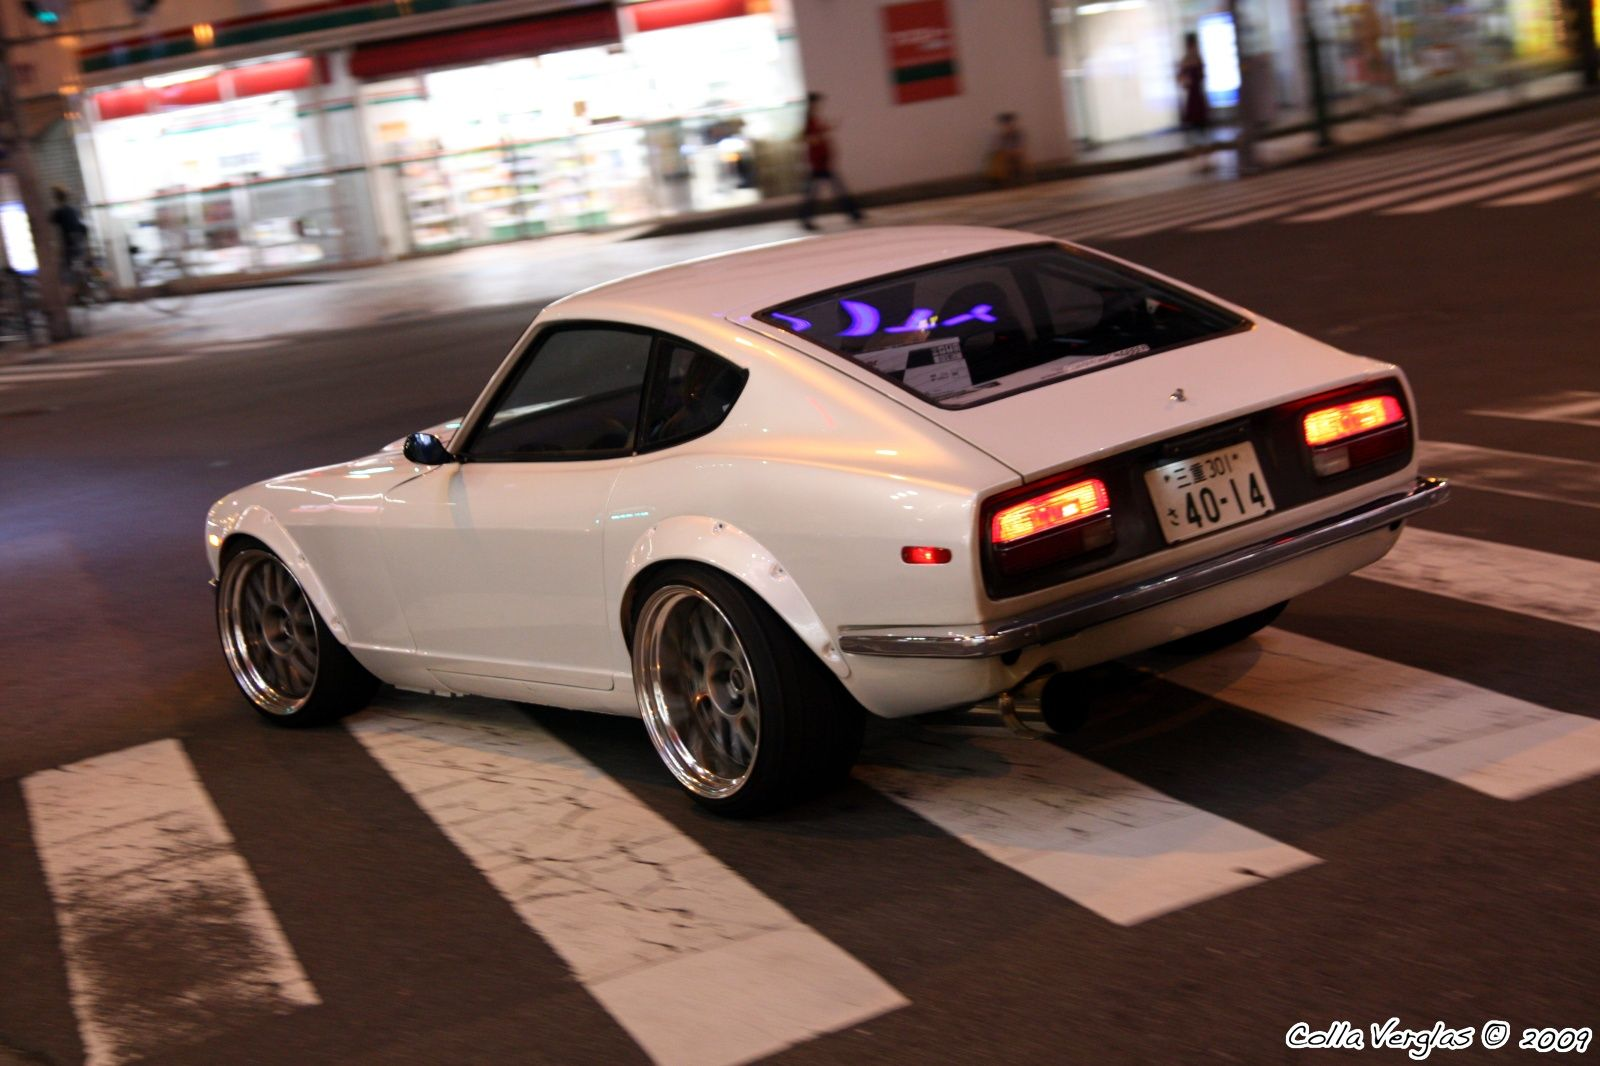 Worksheet. Datsun Fairlady Z Had one back in the dayLOVED zipping around